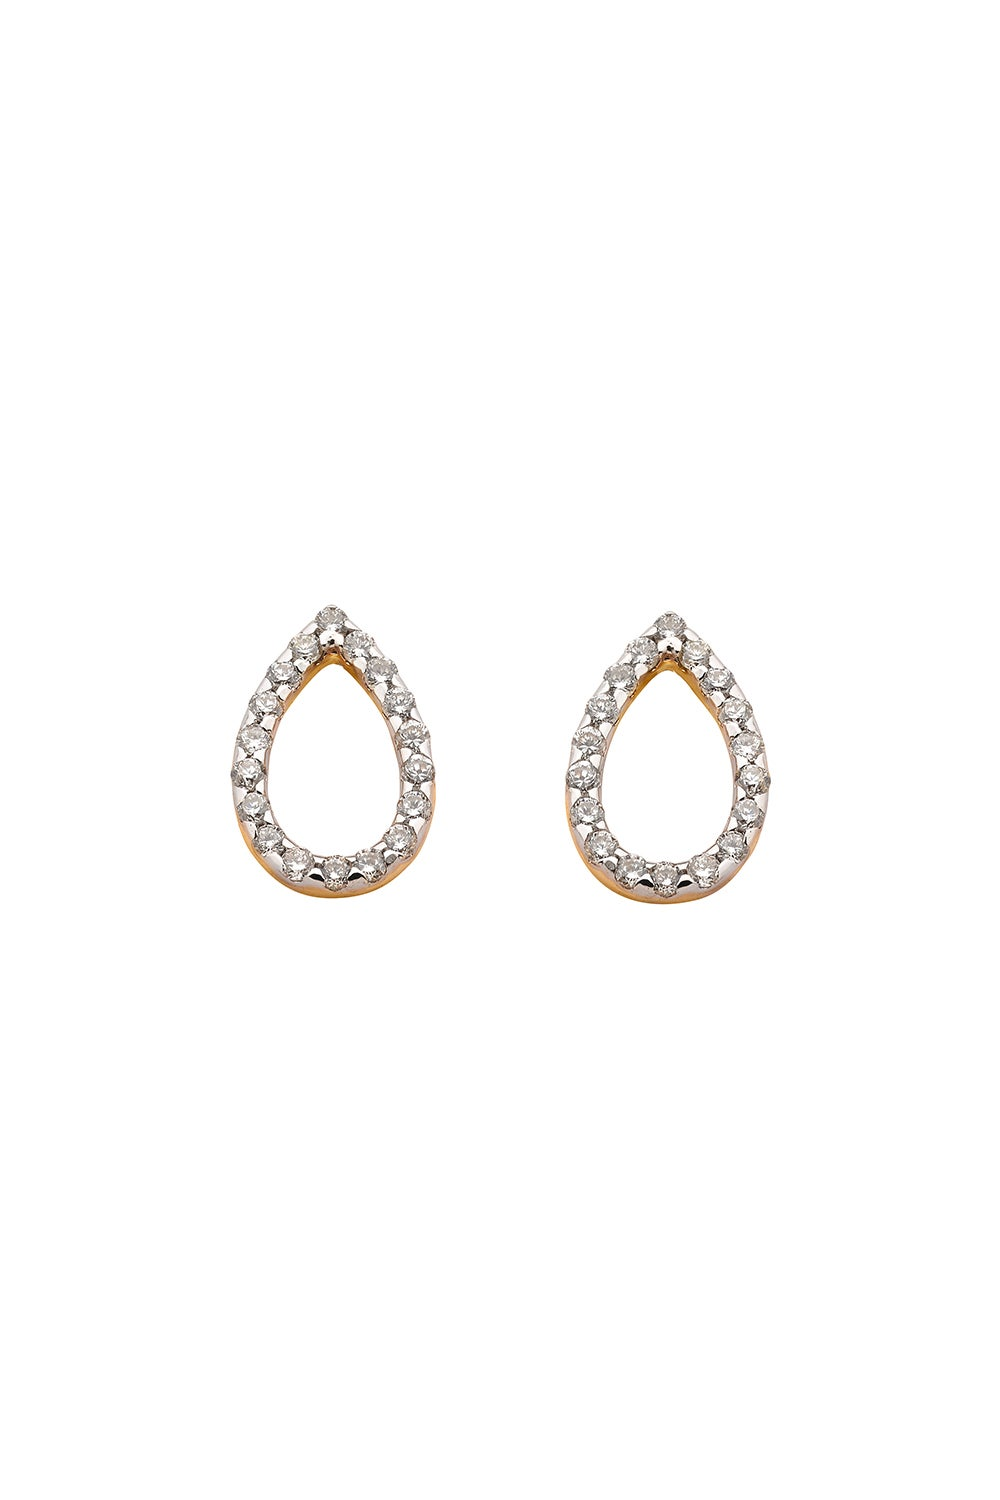 Capsule Diamond Earrings, 9ct Gold, .24ct Diamond